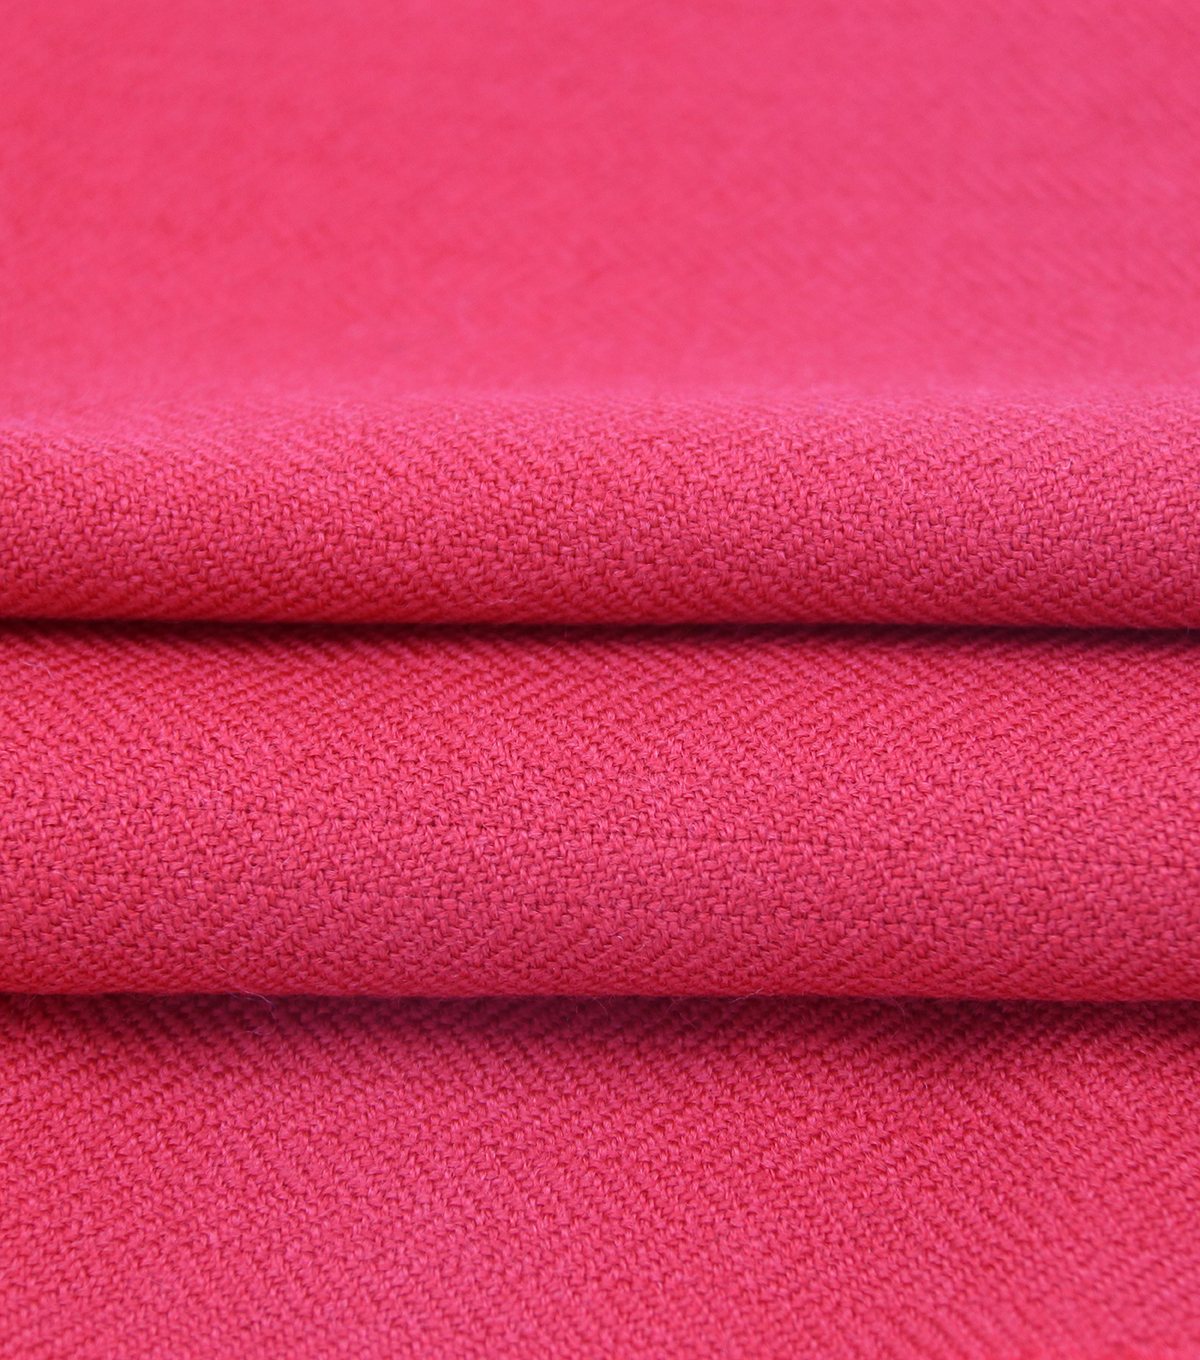 Casa Collection Wool Fabric 56 U0027 Solids